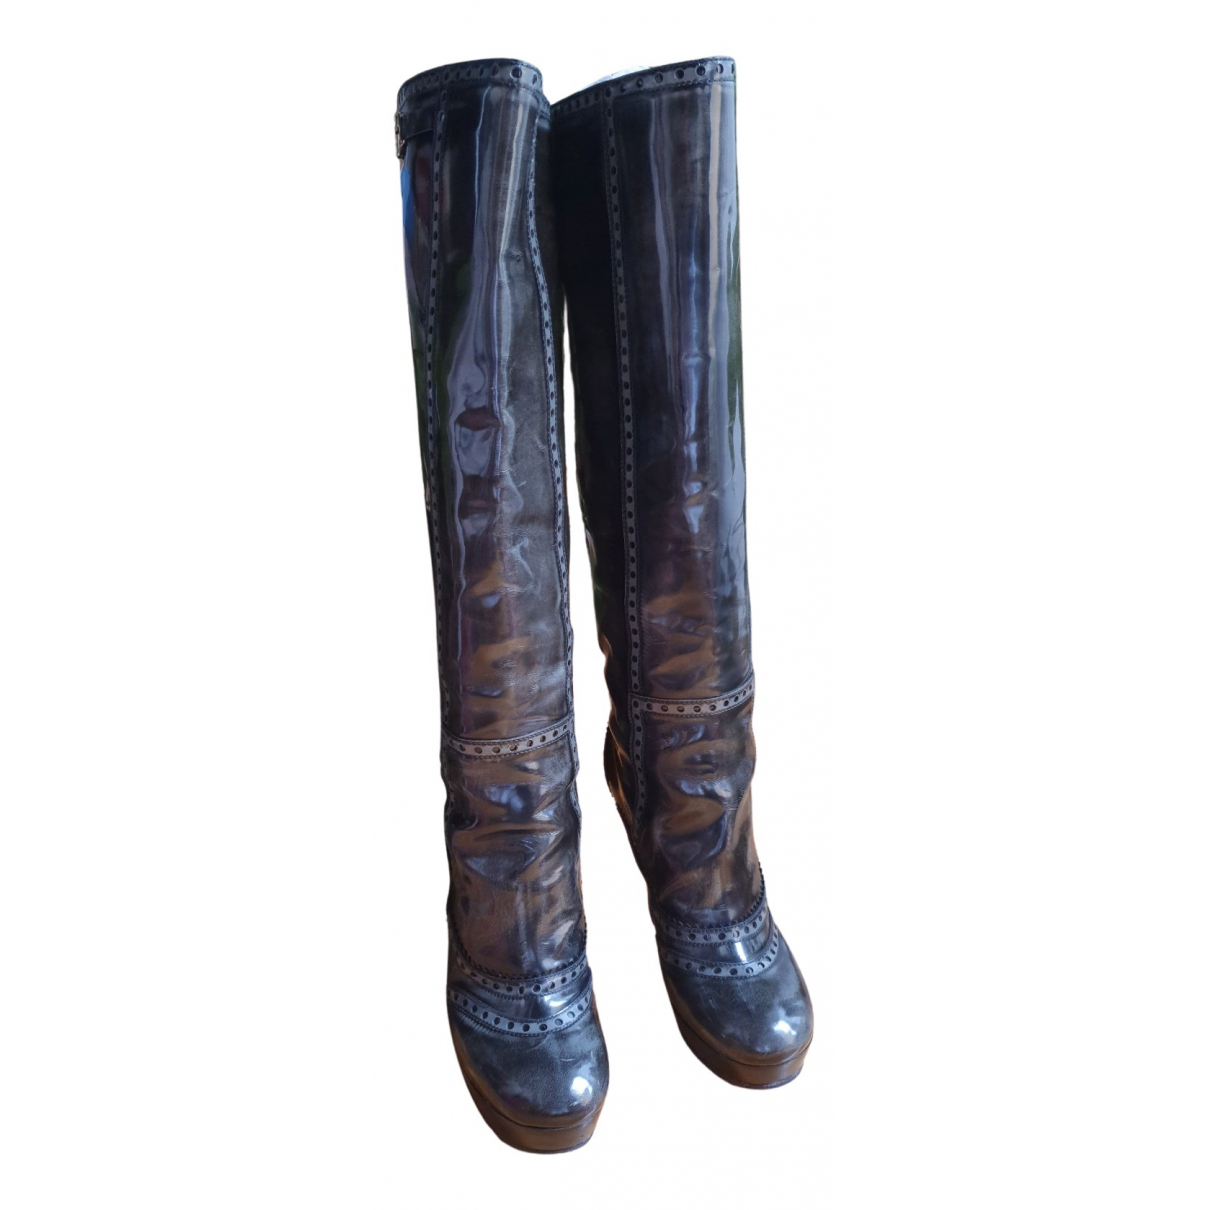 Gucci N Black Patent leather Boots for Women 37 EU